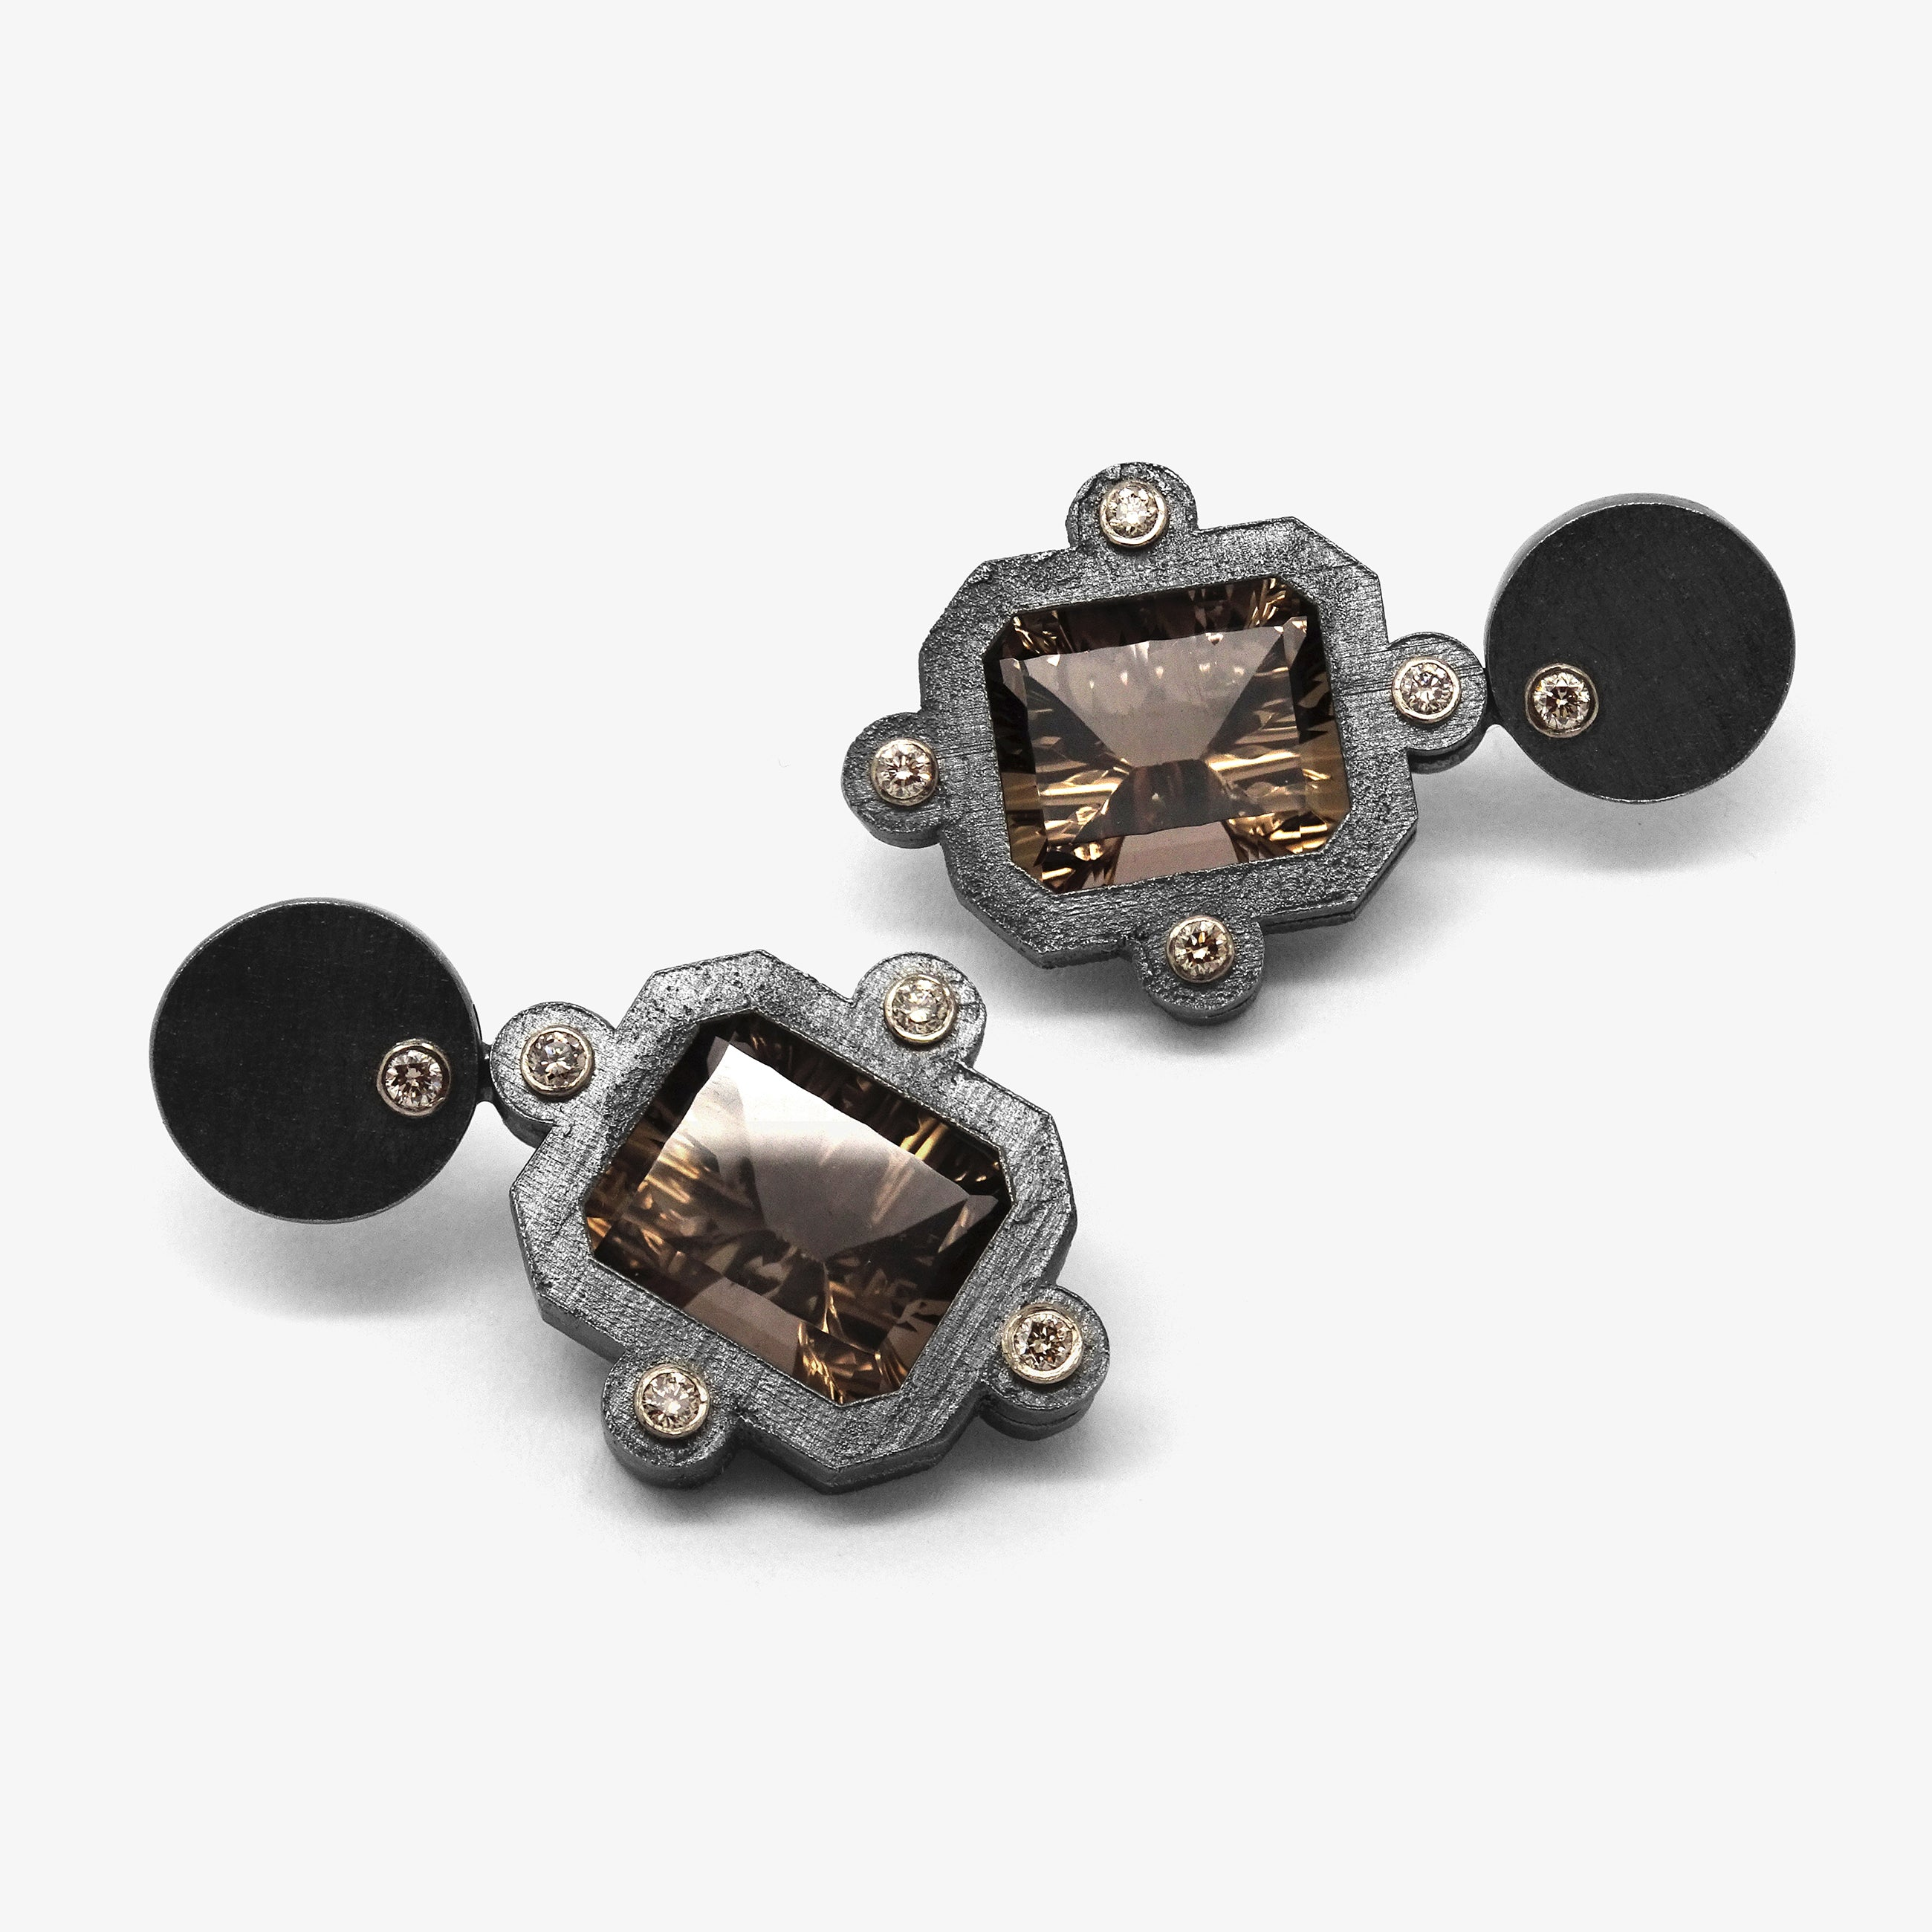 CANOPUS STUD EARRINGS - SMOKY QUARTZ